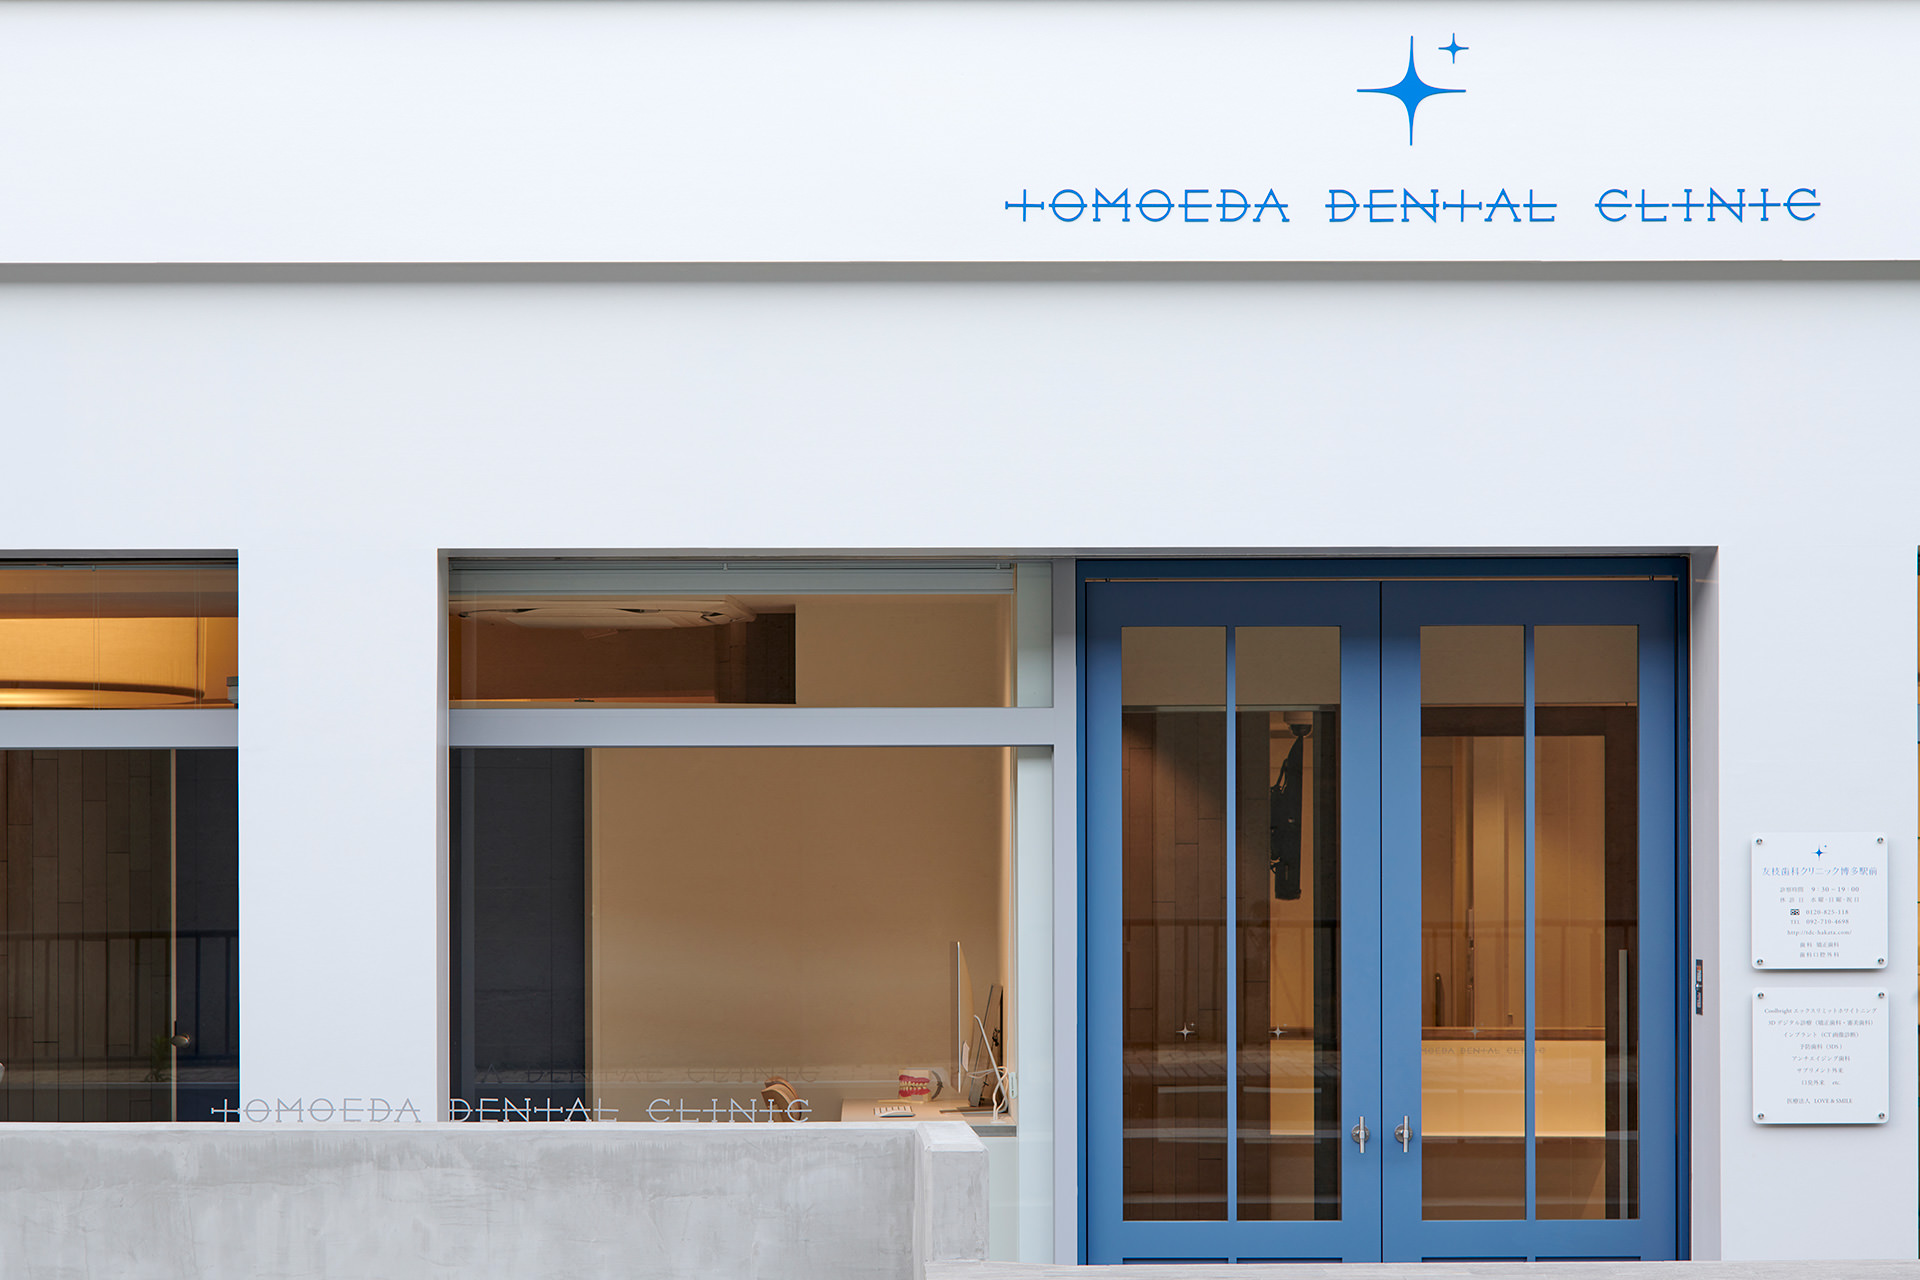 TOMOEDA DENTAL CLINIC